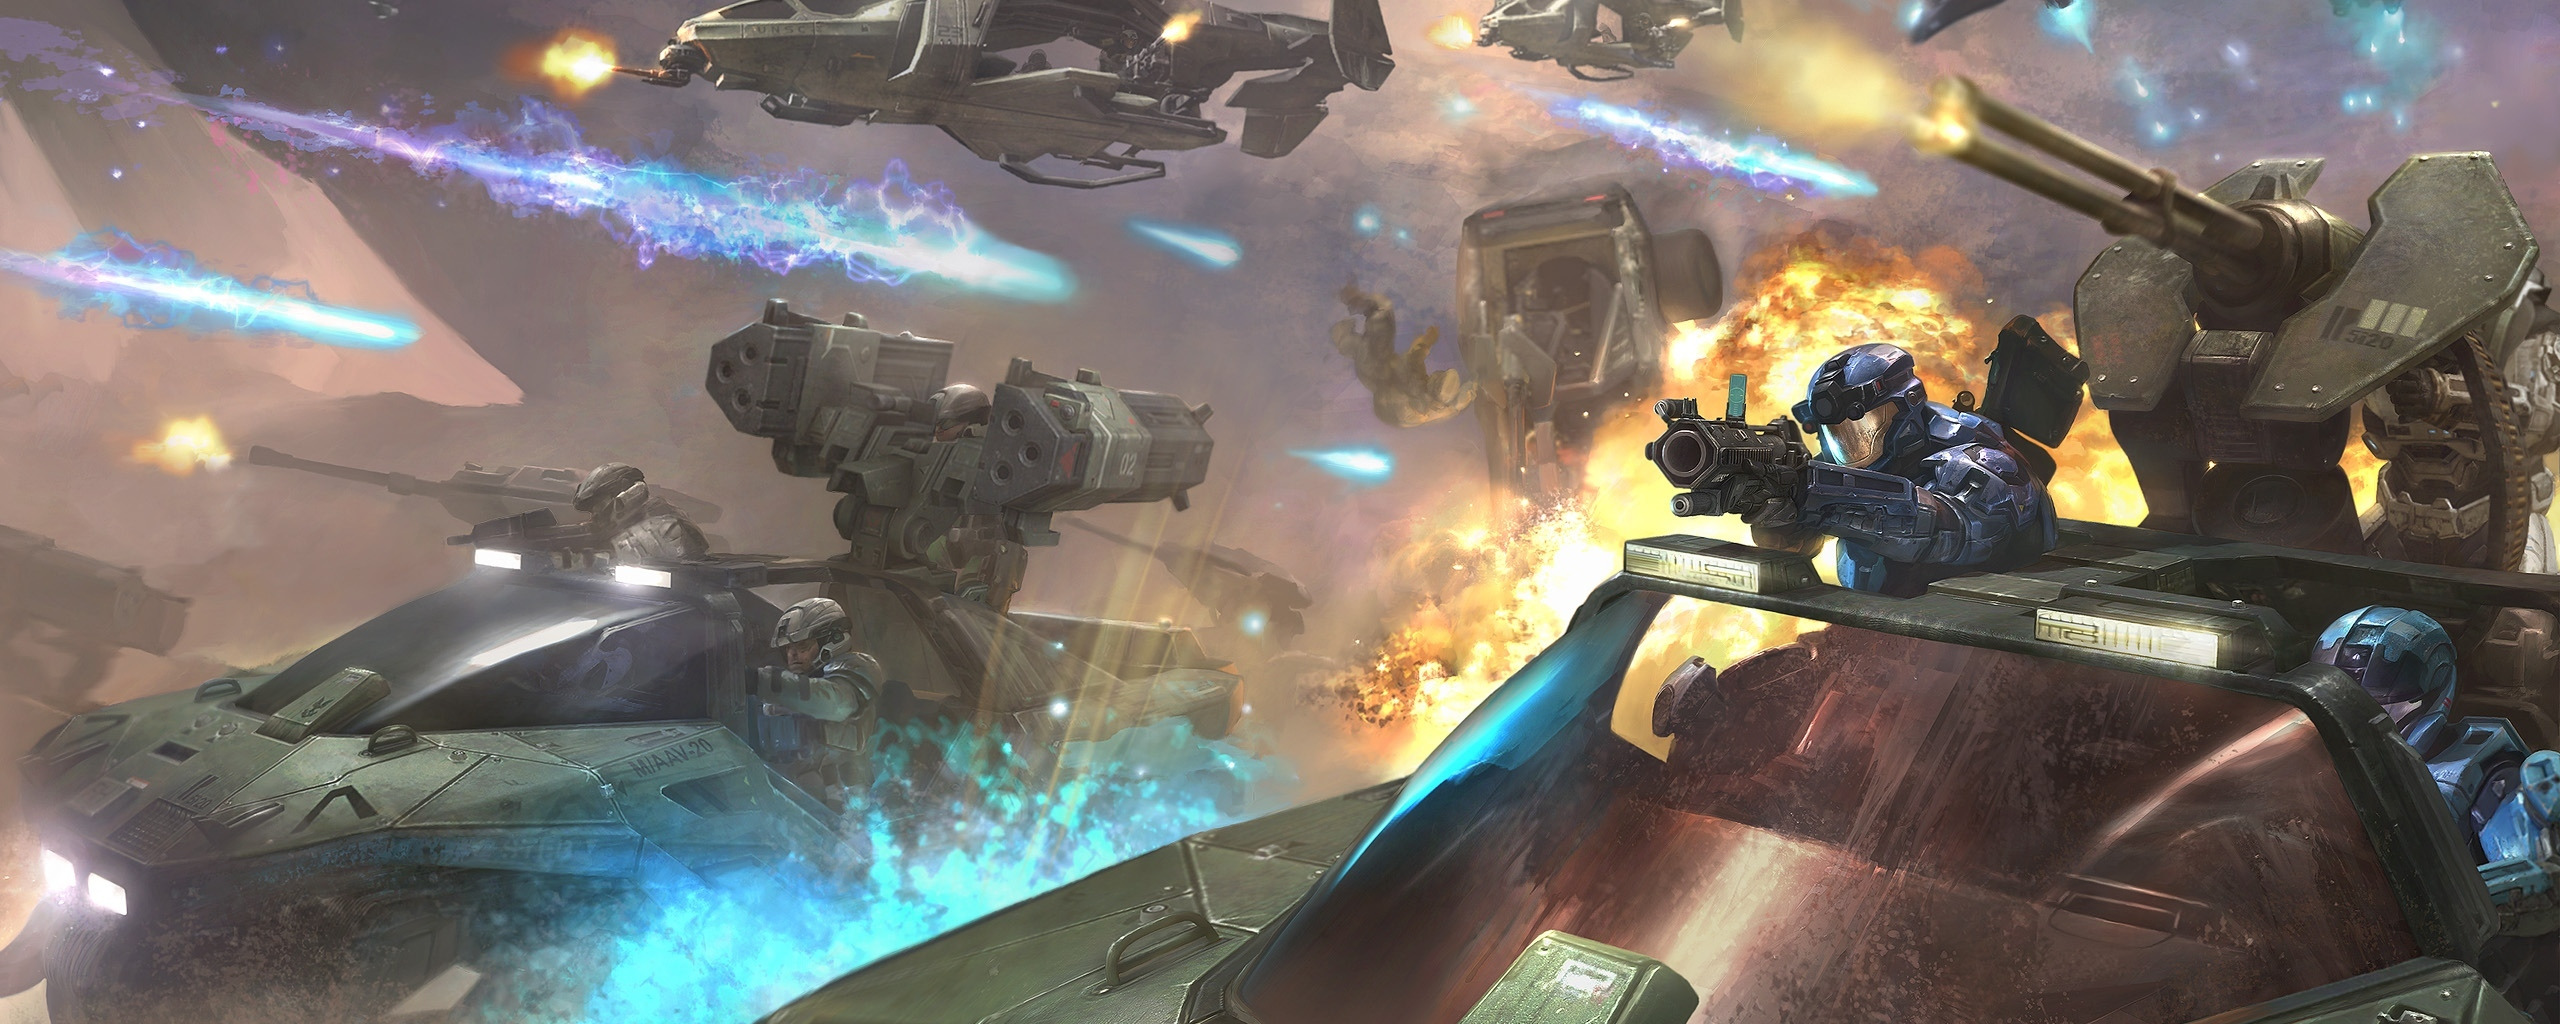 Download wallpaper future, weapons, arrows, explosions